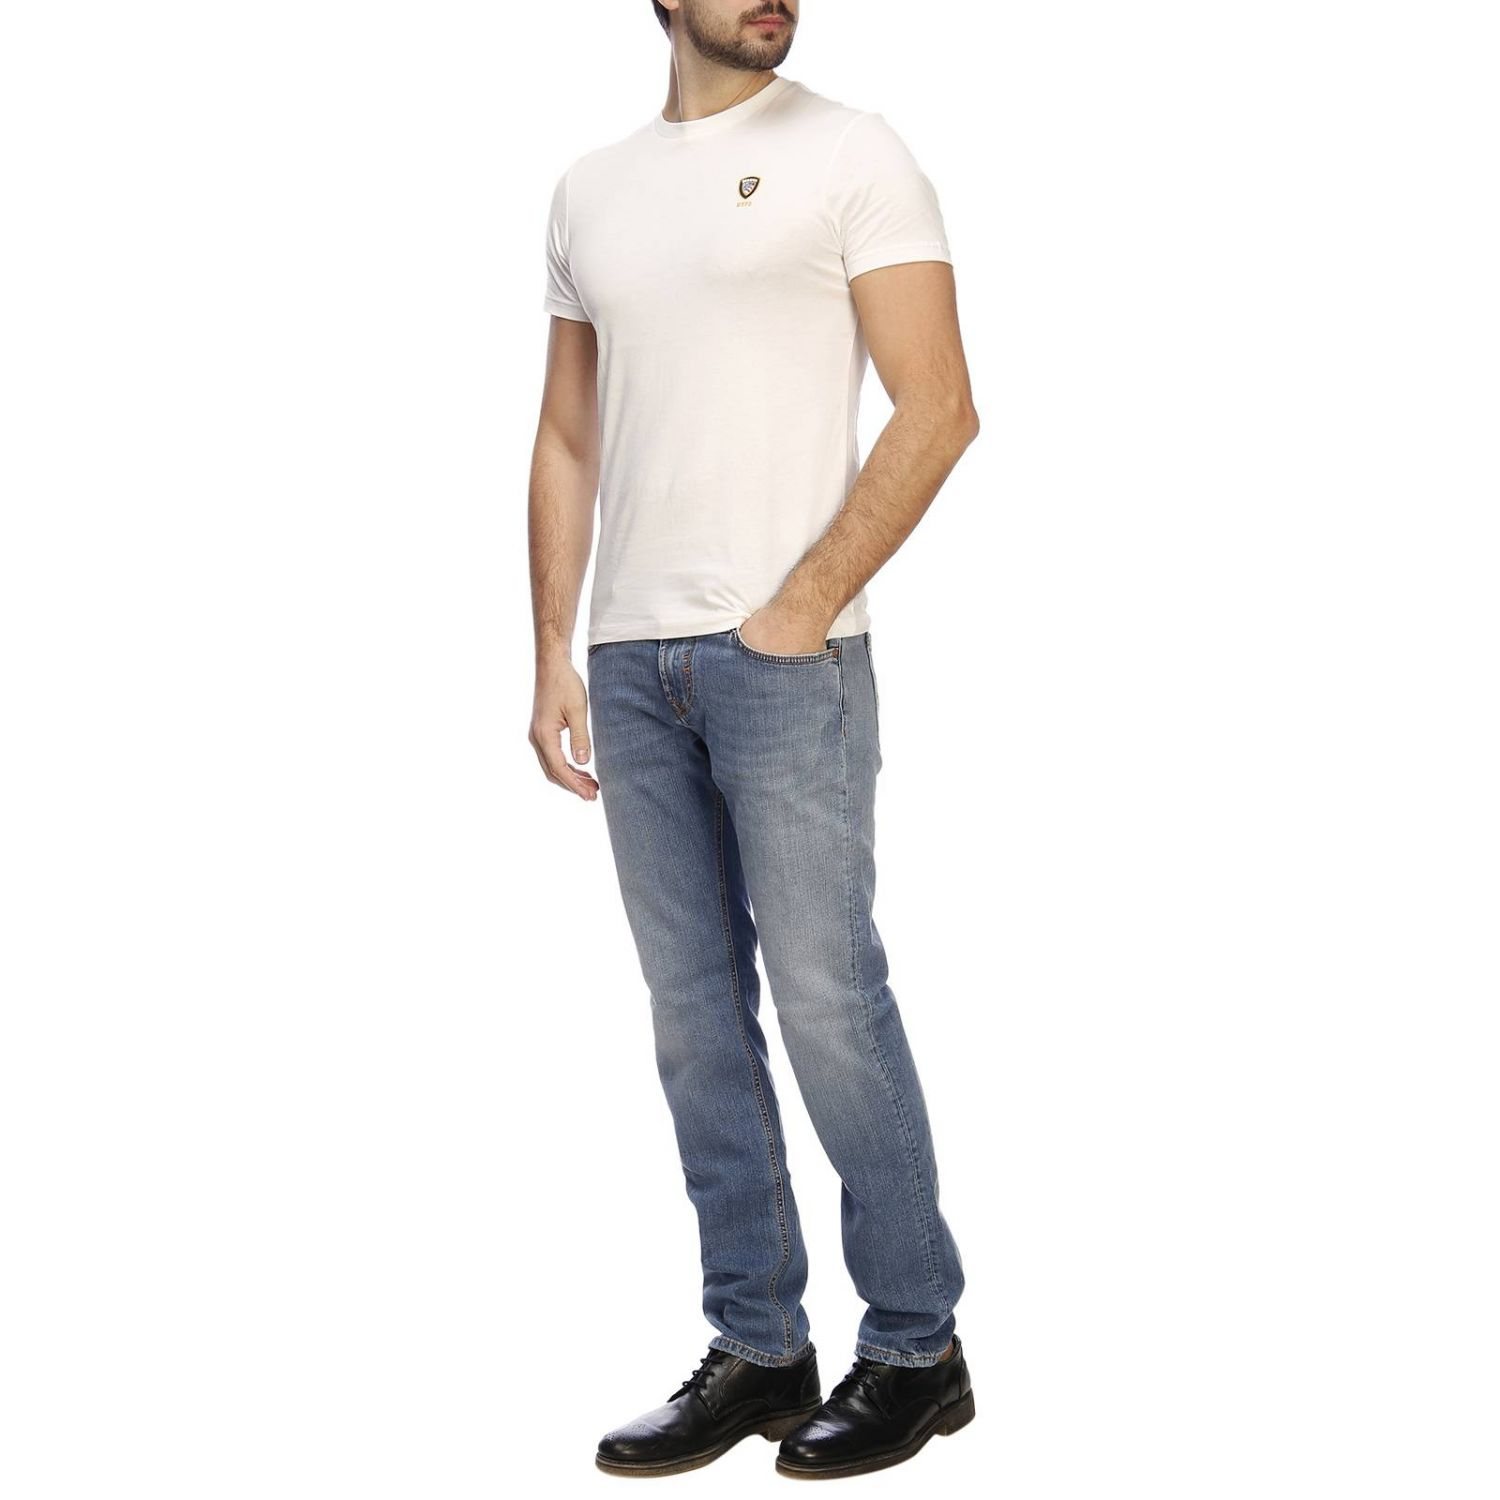 T-shirt men Blauer ivory 4